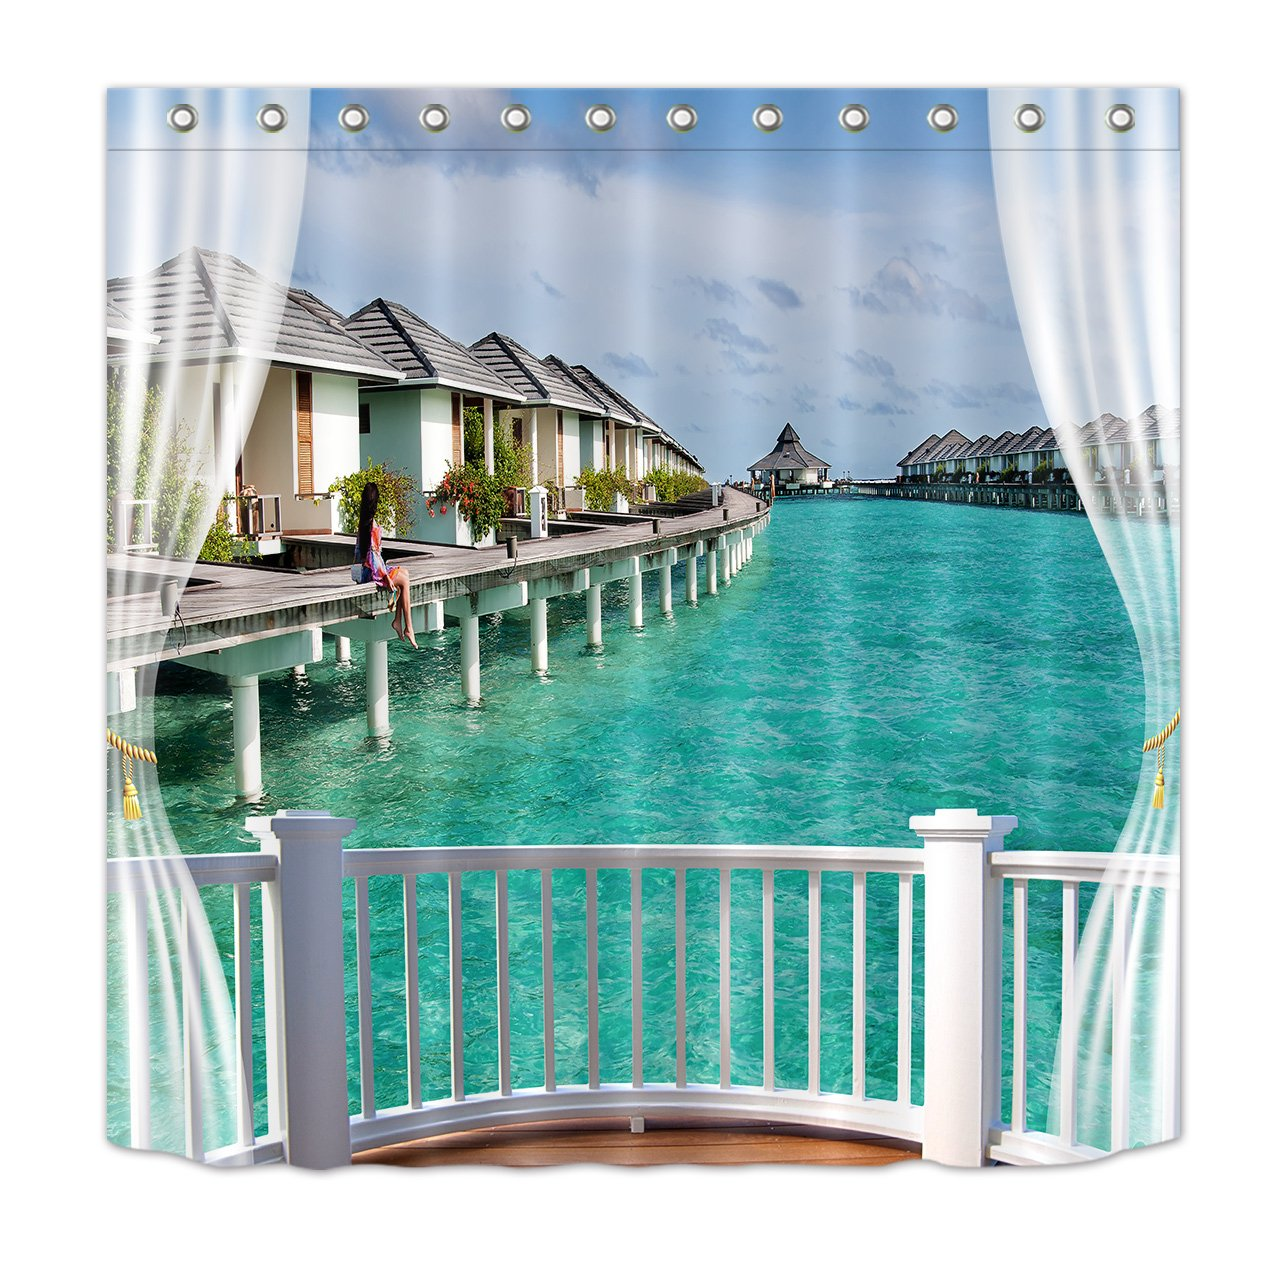 LB Fabric Shower Curtain Beach Themewith Houese Blue Sea Scene CurtainWaterproof Mildew Resistant Bathroom Decor For Stall